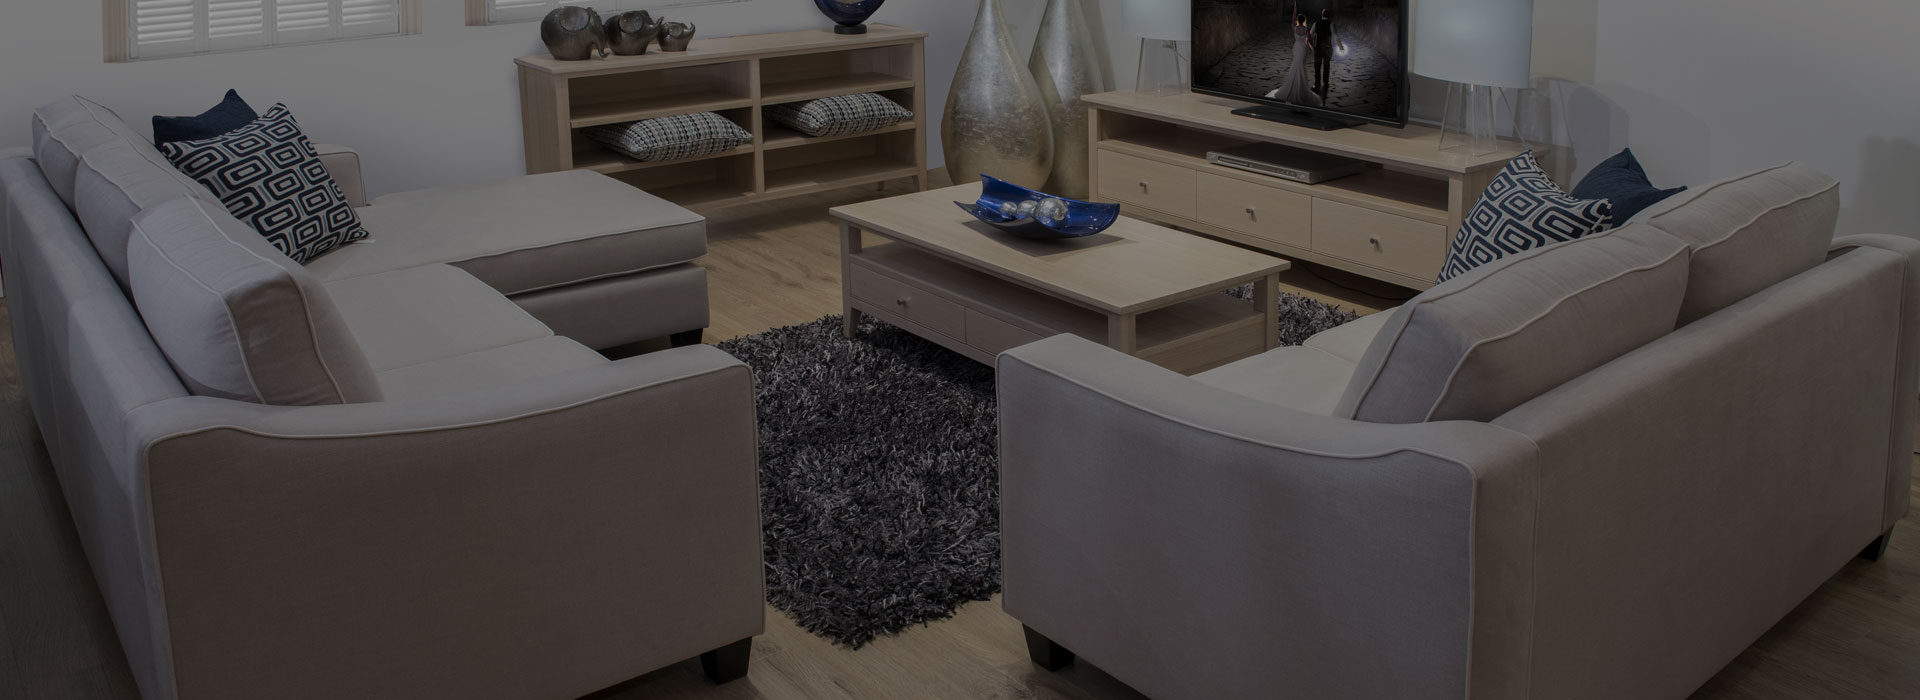 Australian Made Sofas Australian Made Sofas Lounges Sydney Custom Designs Furniture